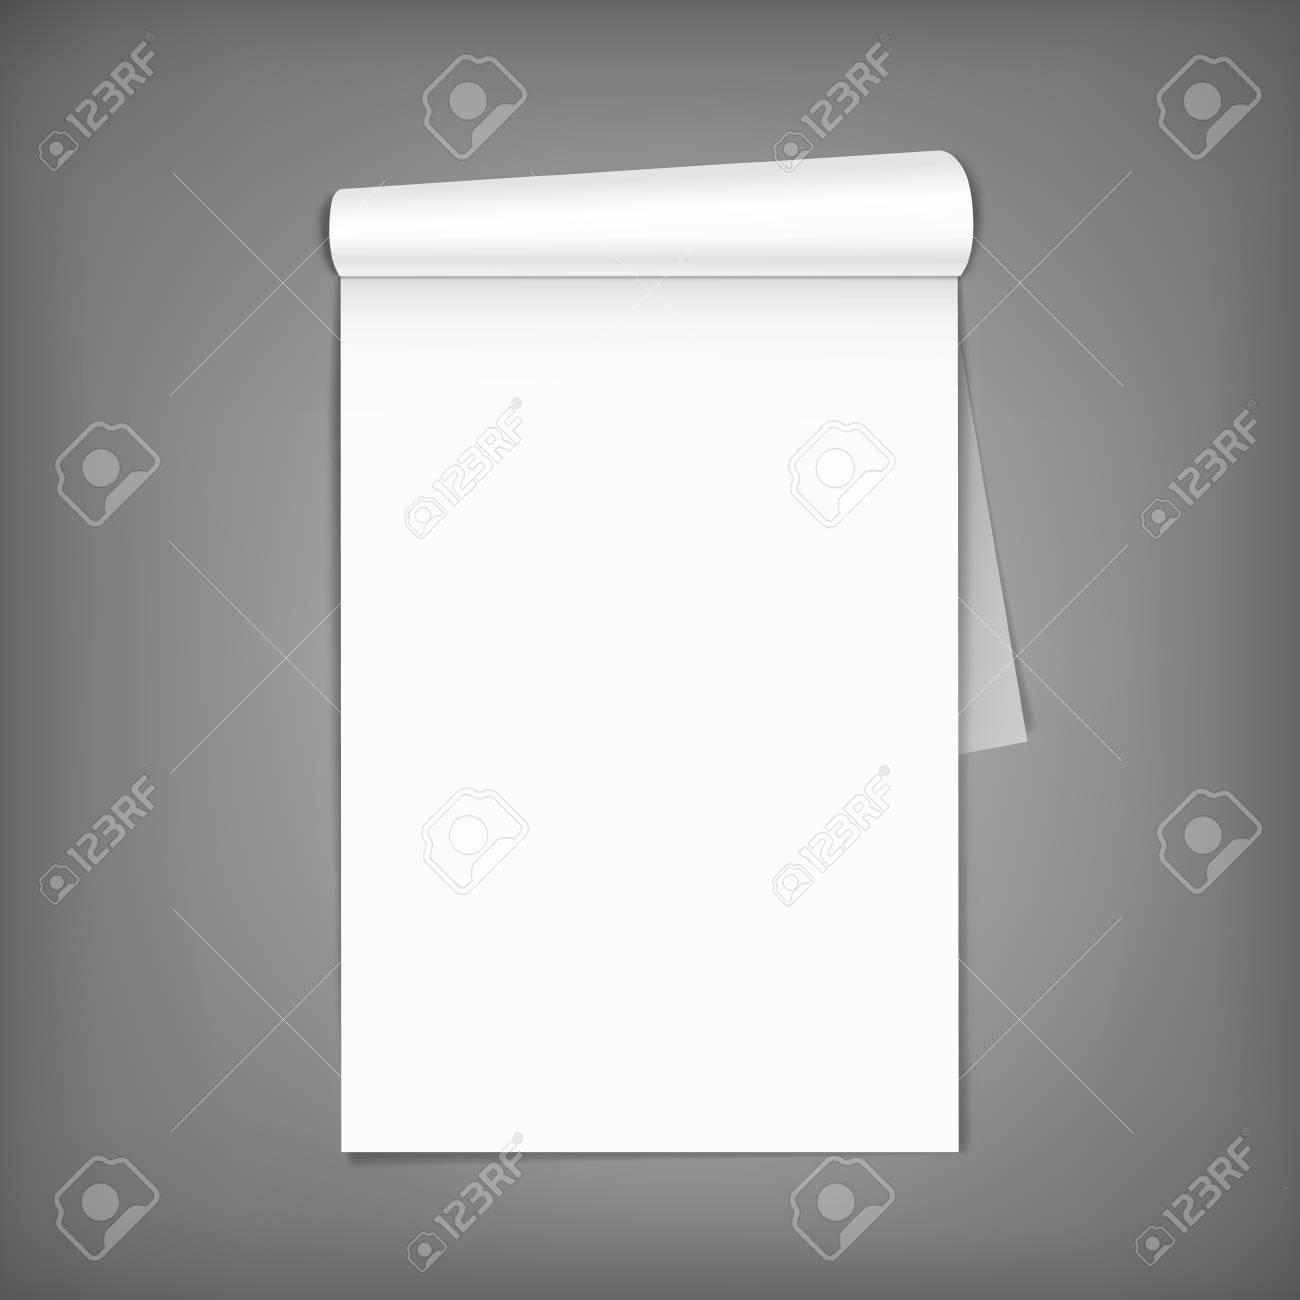 Blank open magazine with rolled page on neutral grey background . Vertical orientation. Template for your design. - 78993647